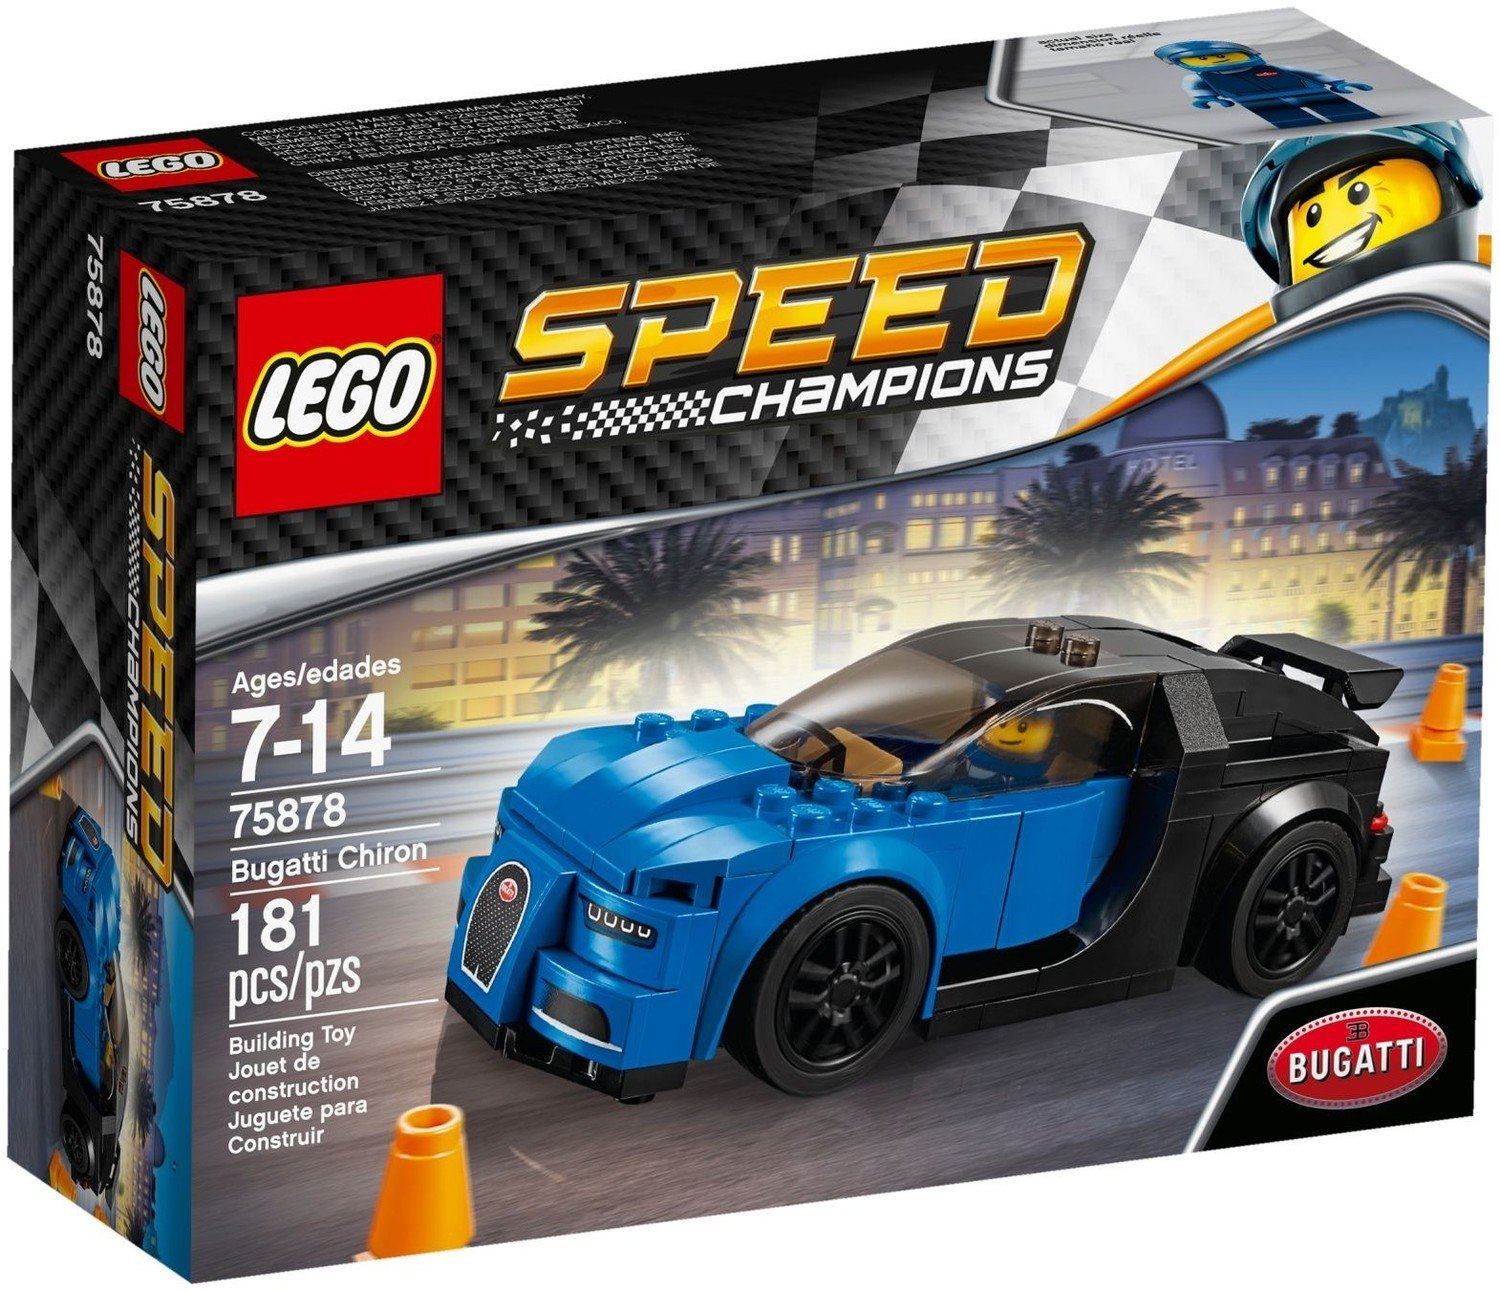 coupon codes for whole family arrives Bugatti Chiron - LEGO Speed Champions set 75878